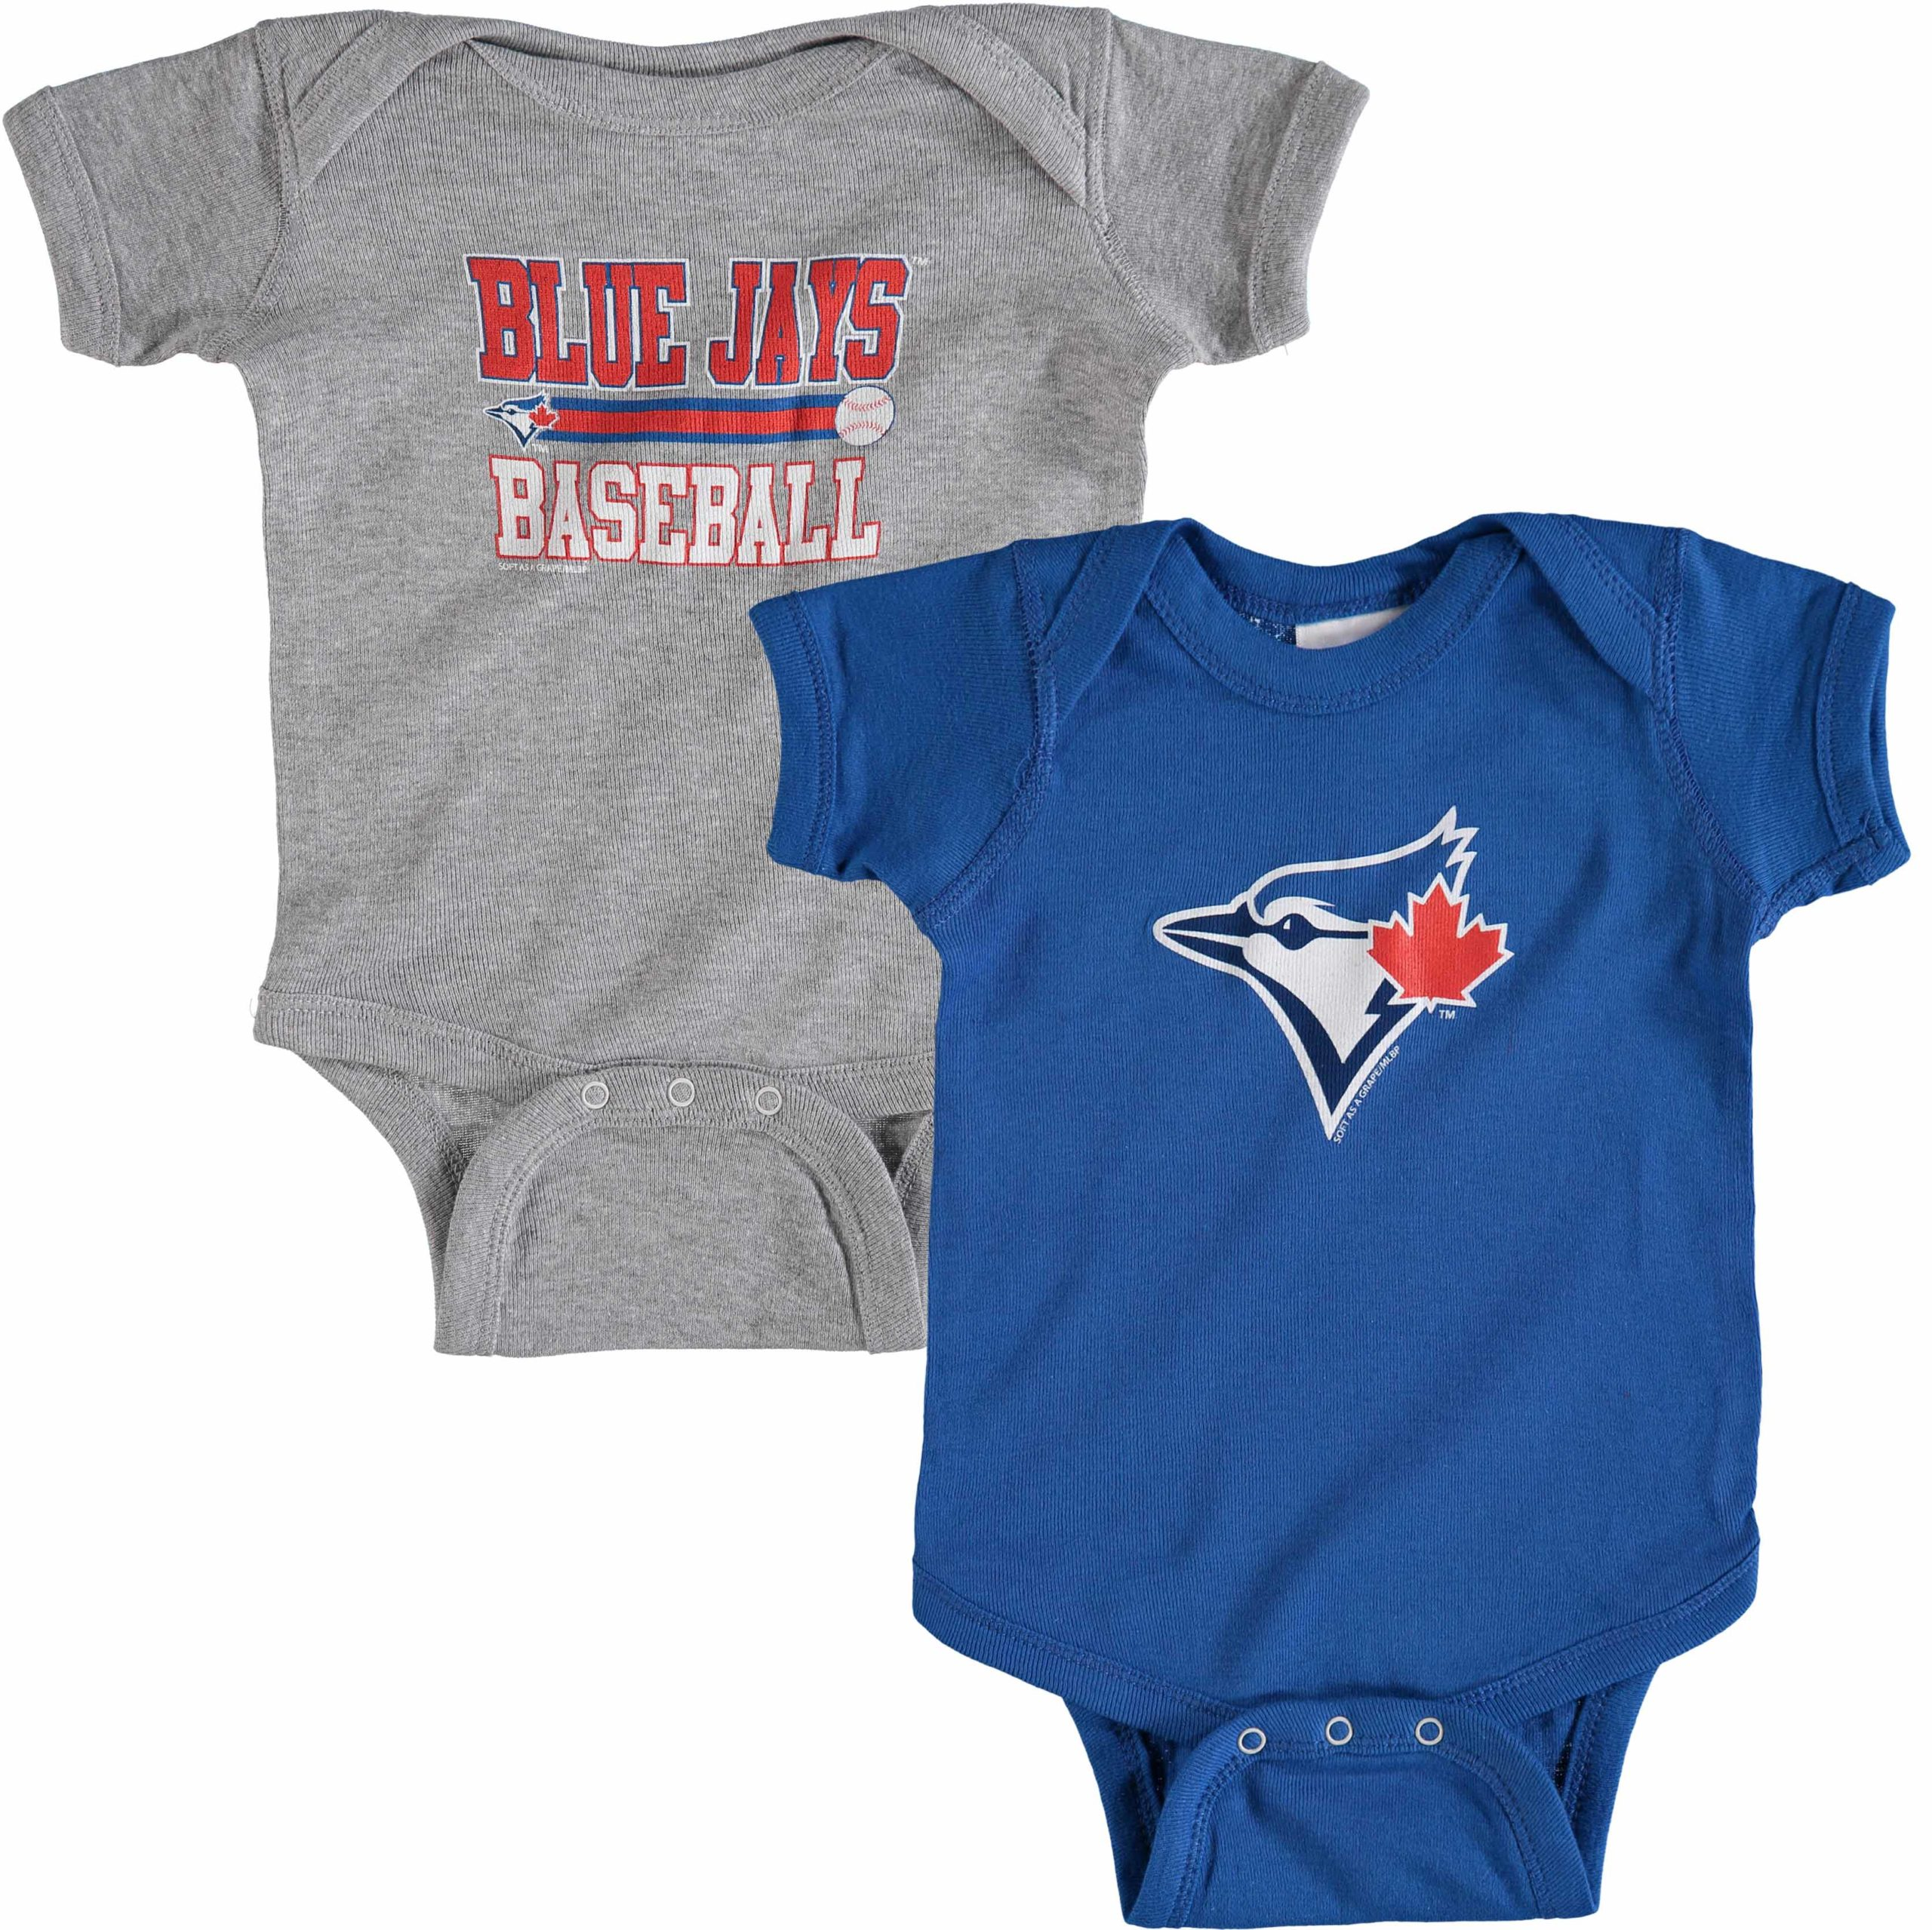 Toronto Blue Jays Soft as a Grape Newborn & Infant 2-Piece Body Suit - Royal/Gray